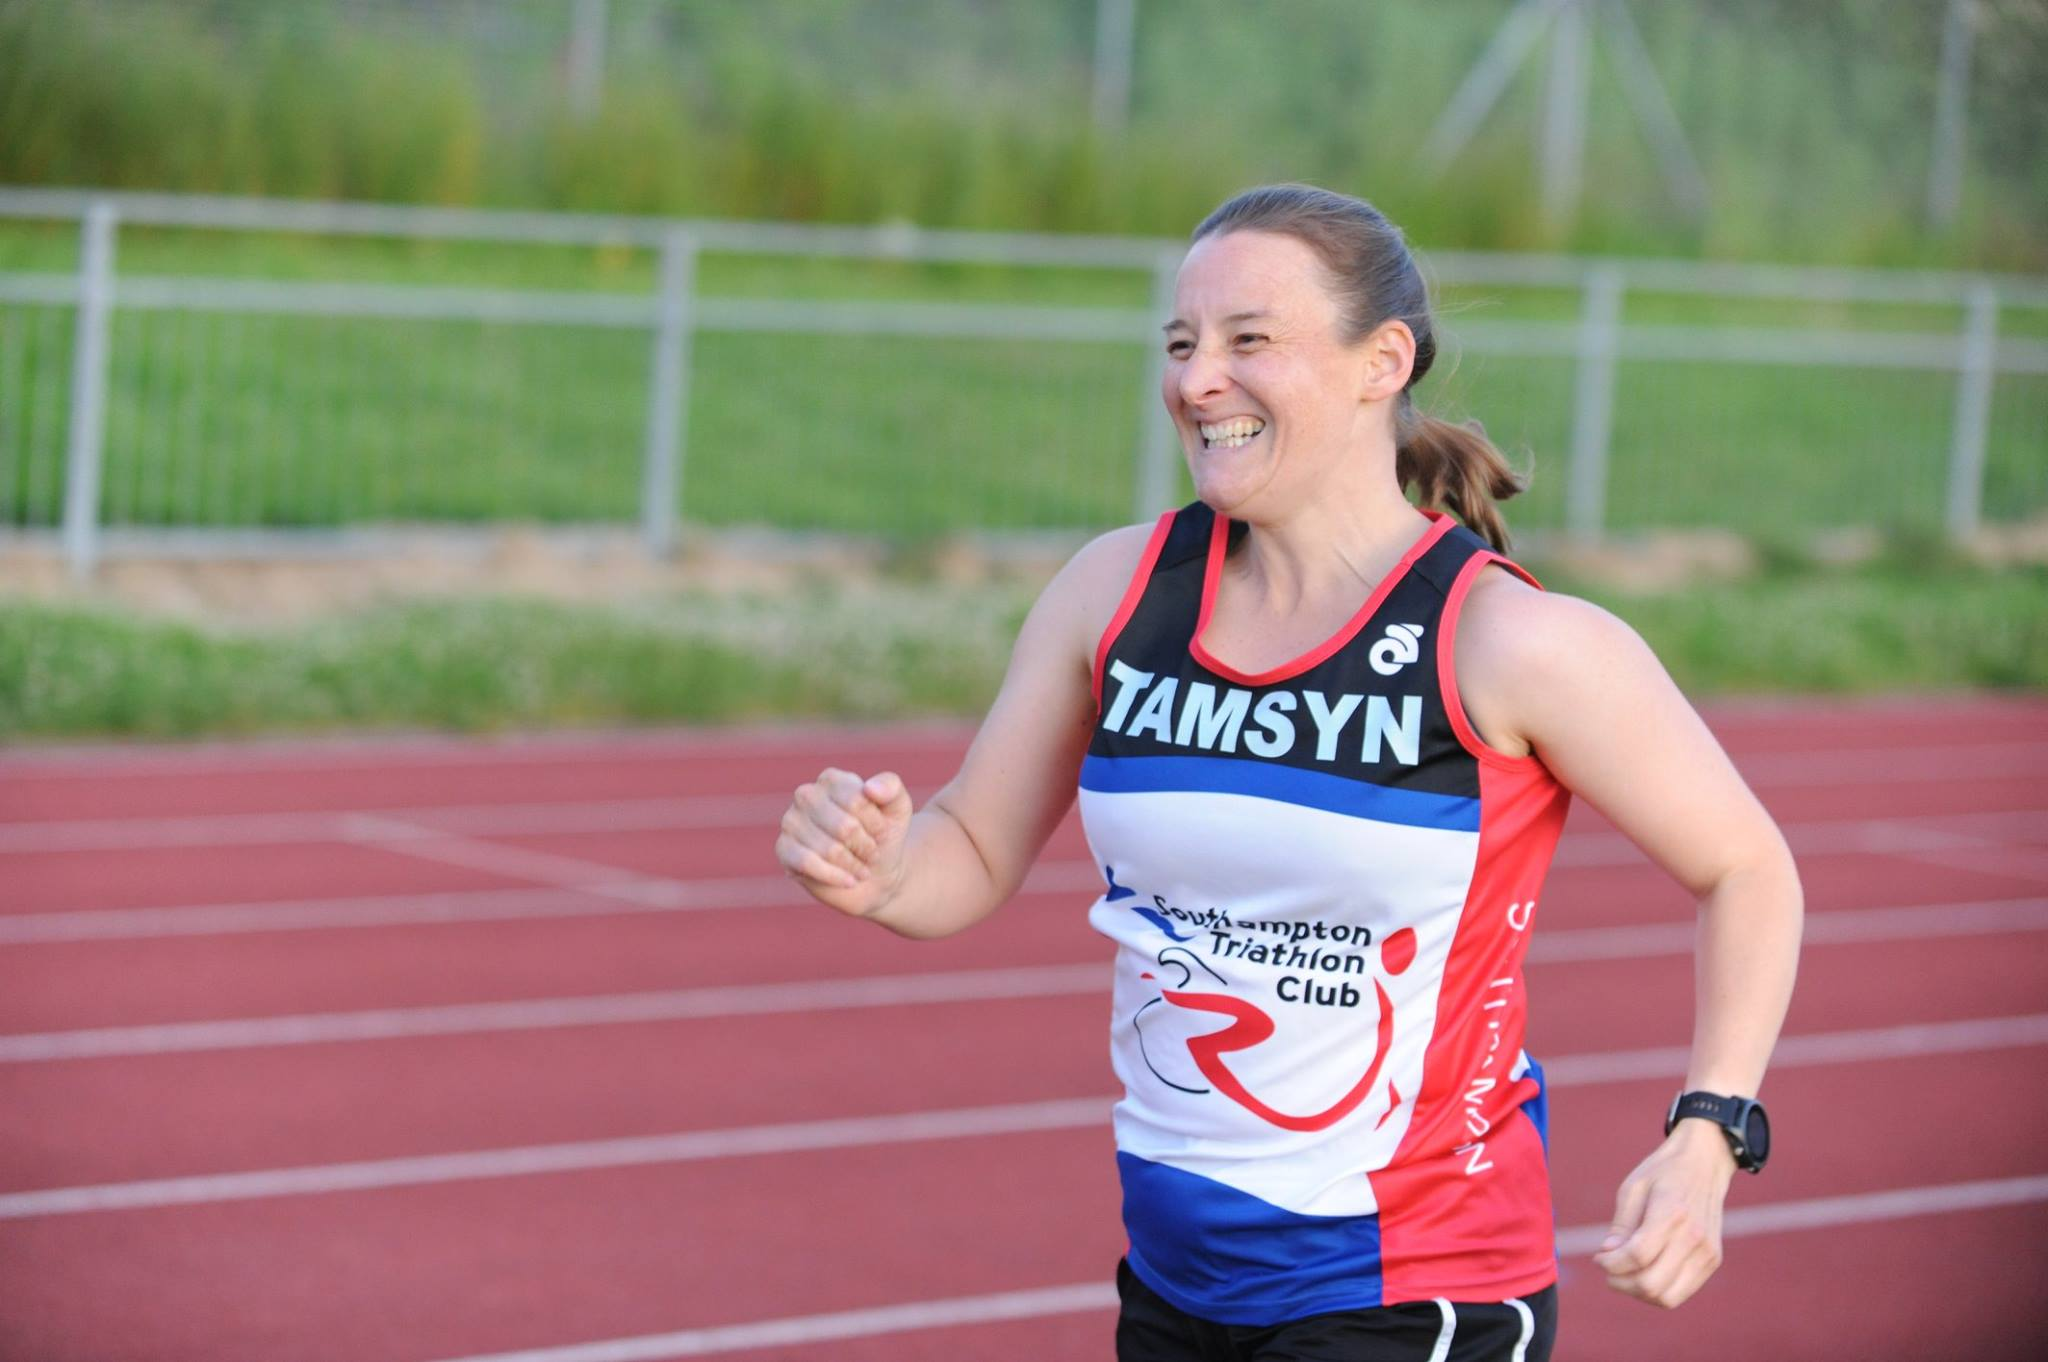 Tamsyn sprinting. She is smiling.